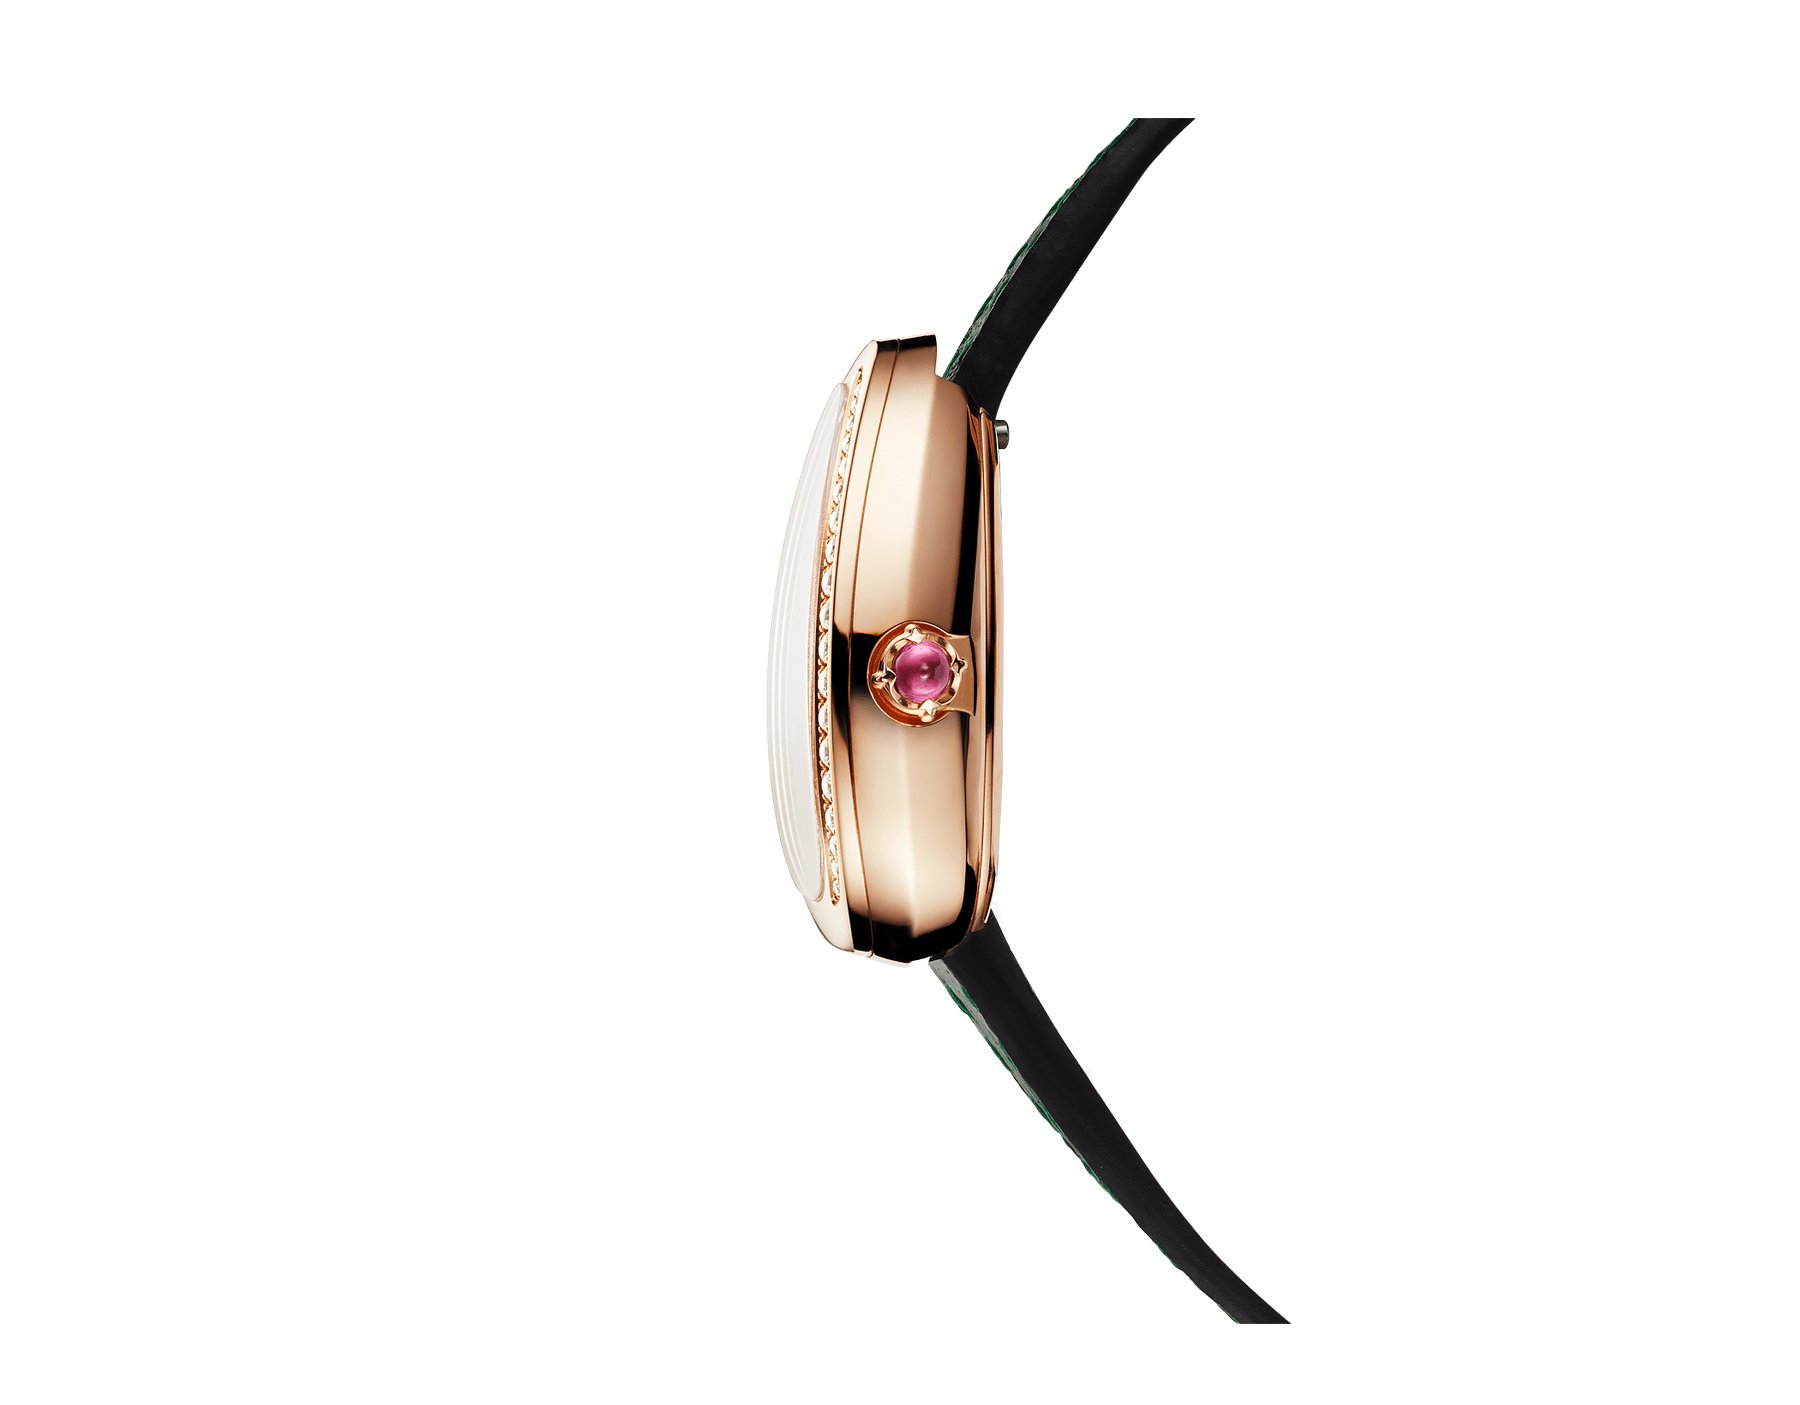 Serpenti watch with 18 kt rose gold case set with round brilliant-cut diamonds, black lacquered dial and interchangeable double spiral bracelet in green karung leather 102918 image 2